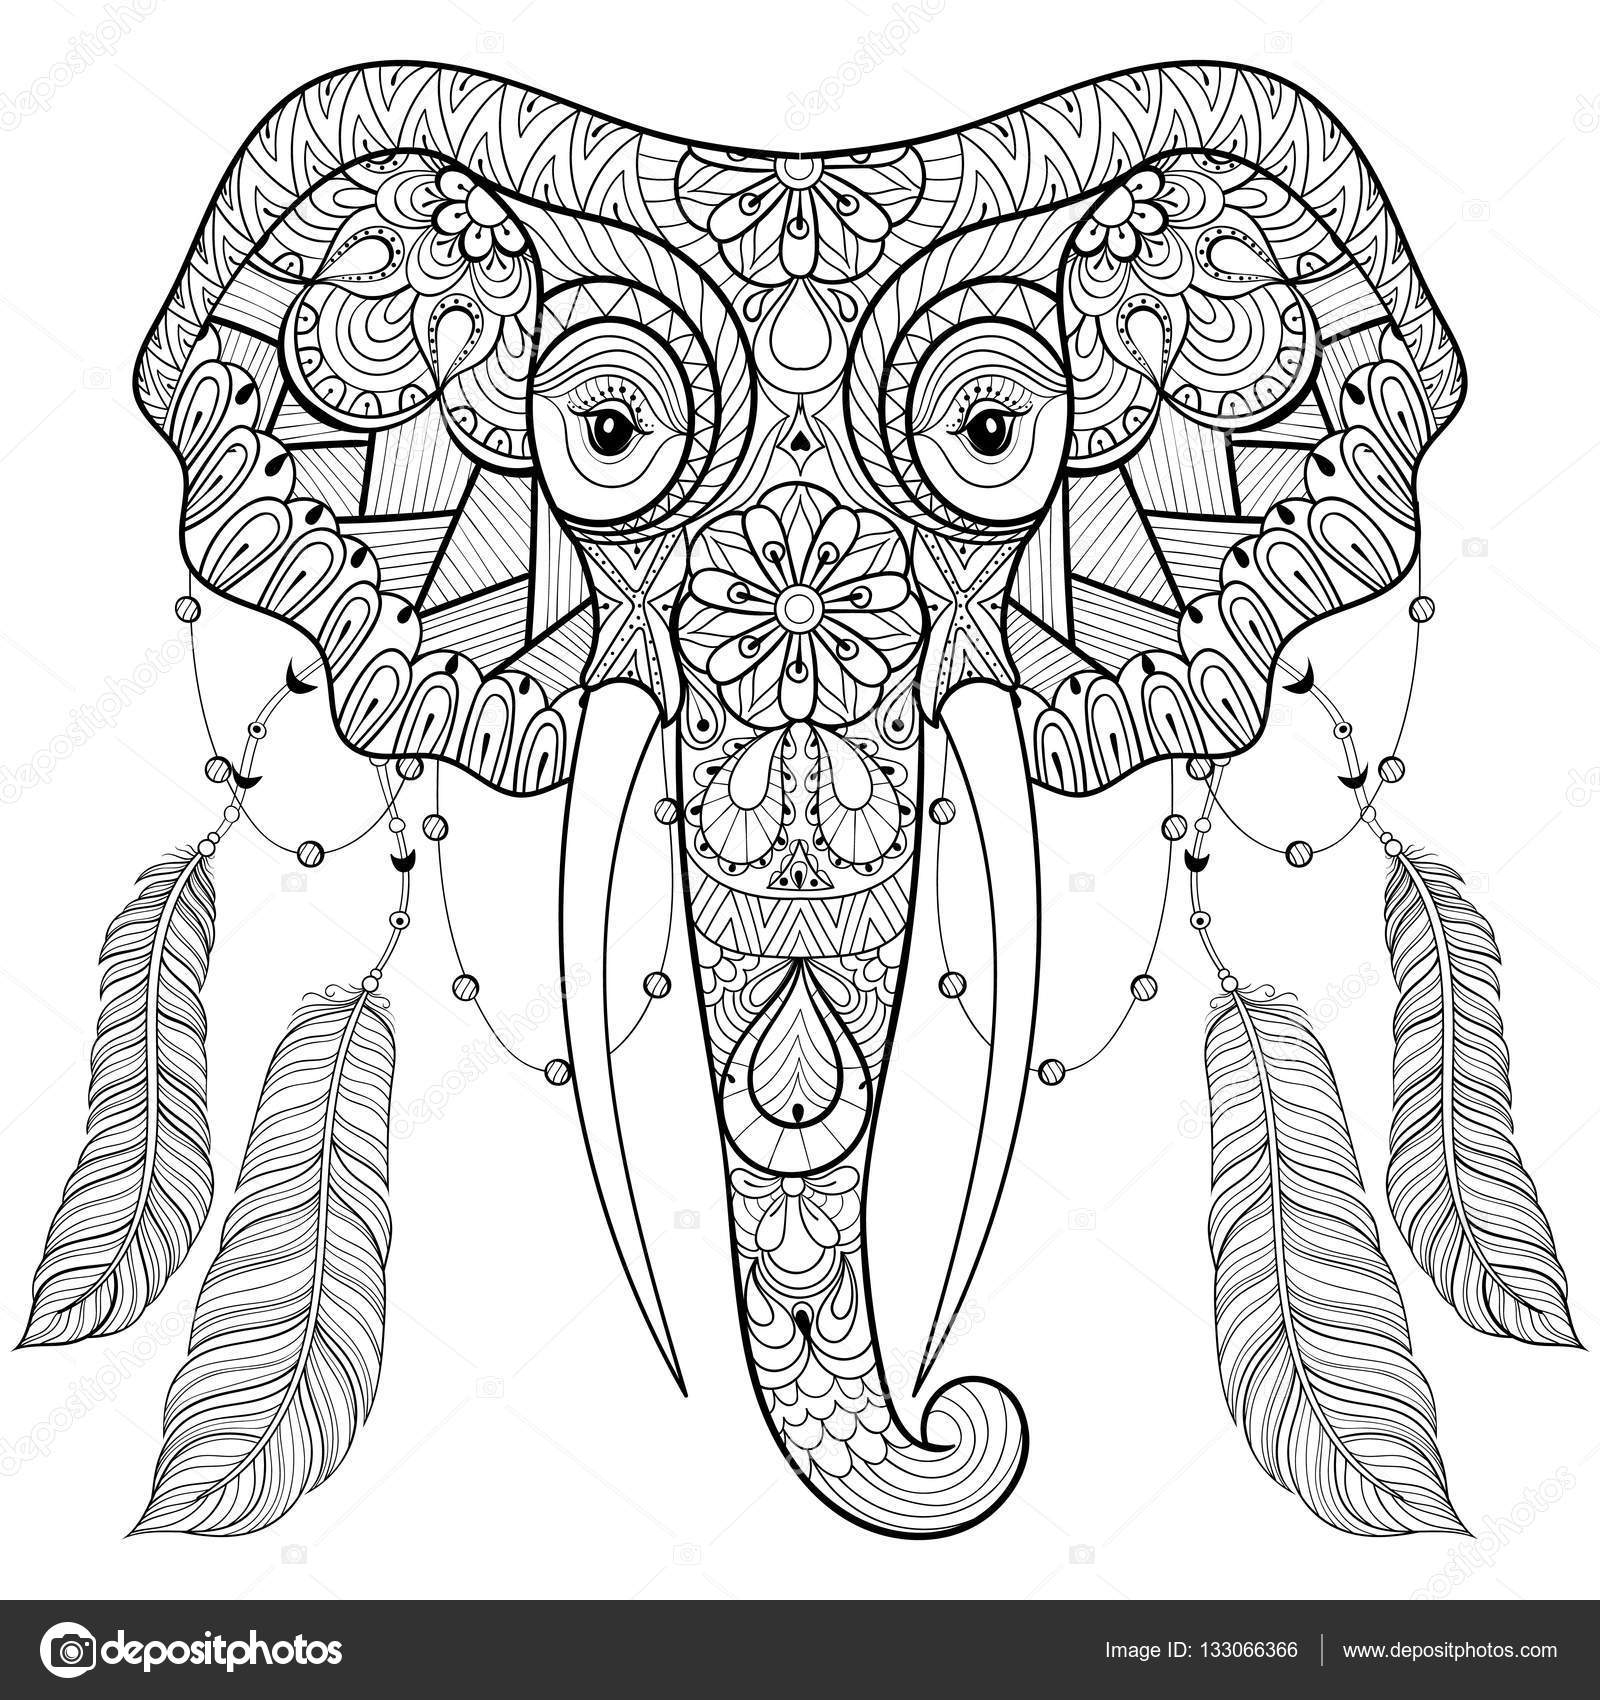 Zentangle Indian Elephant With Bird Feathers In Boho Chic Style Freehand Sketch For Adult Anti Stress Coloring Page Book Vector Illustration T Shirt